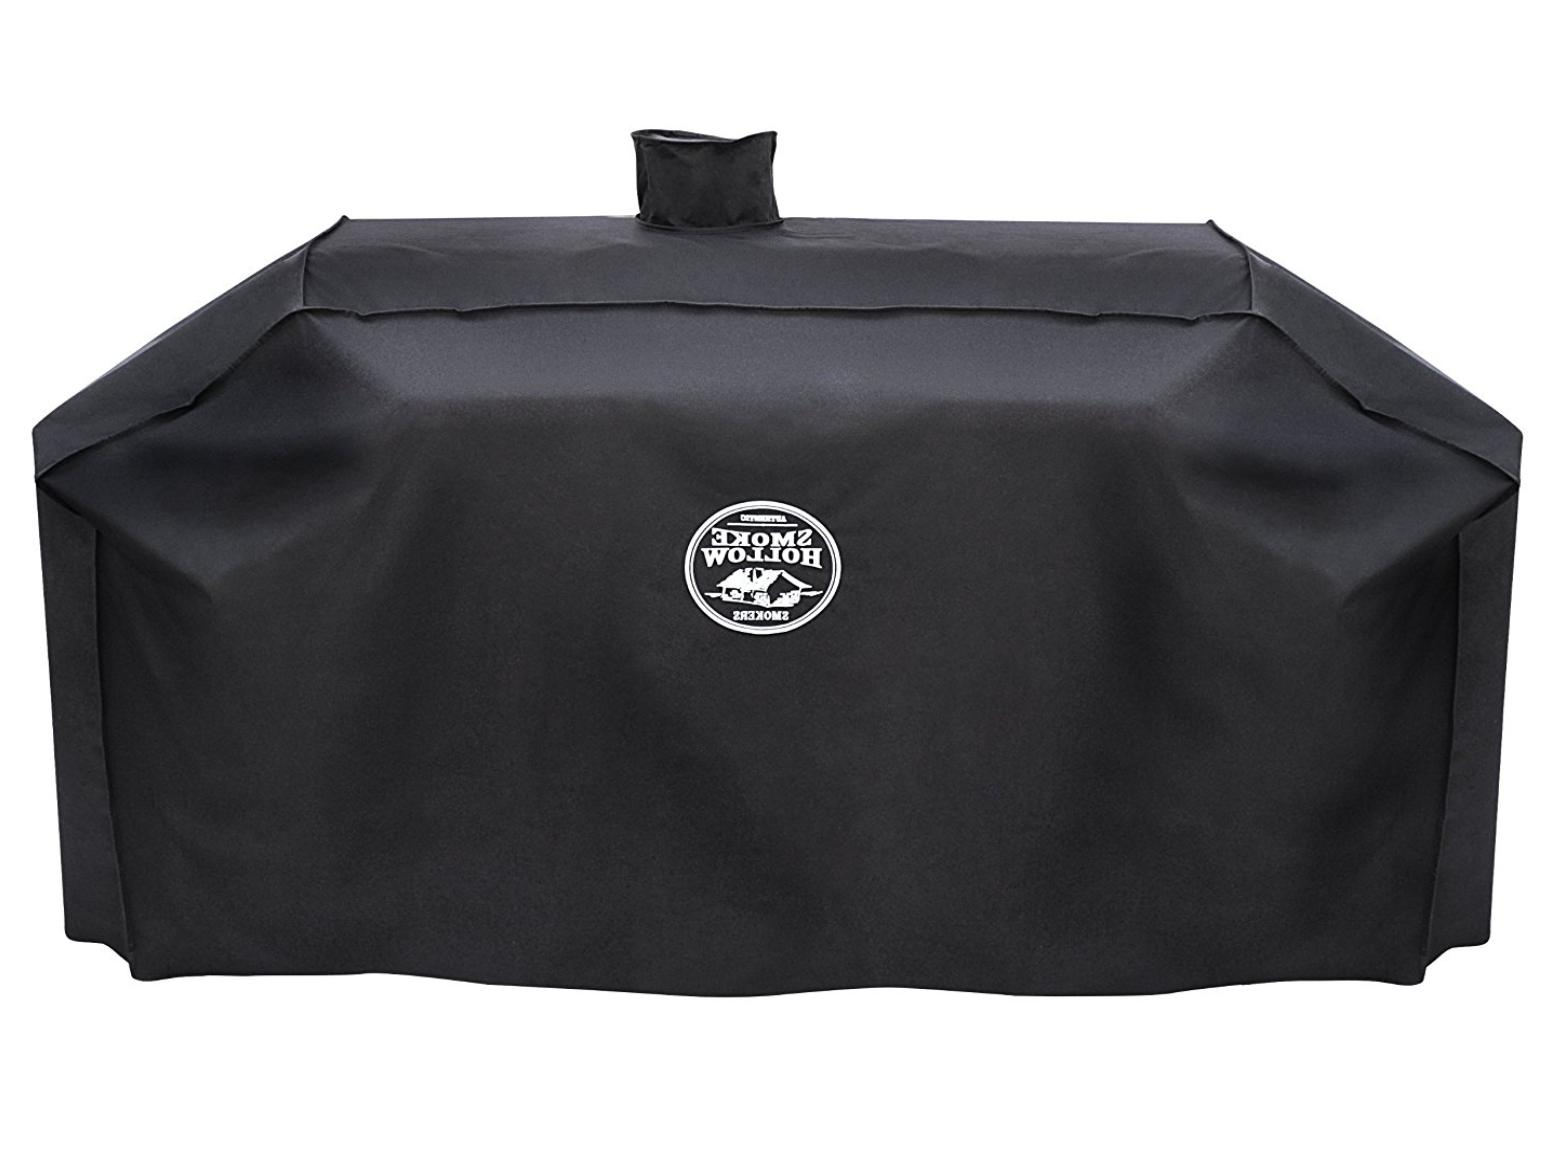 Smoke Hollow Ps9900 Grill Cover Xl Barbecue 4 In 1 Combo Gas